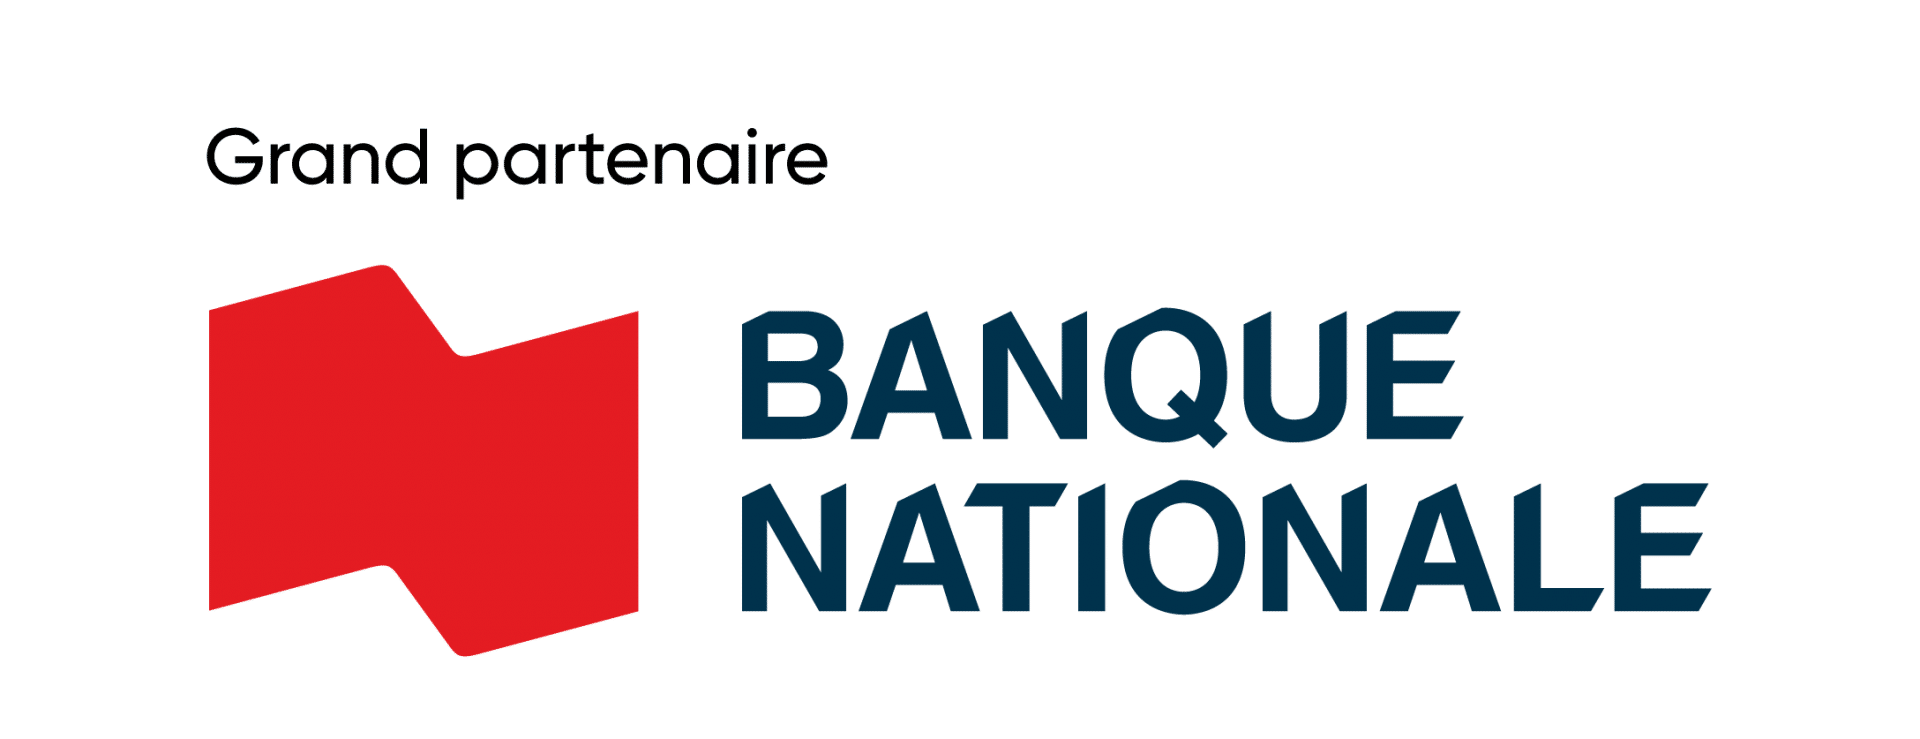 Visiter le site web de Banque nationale